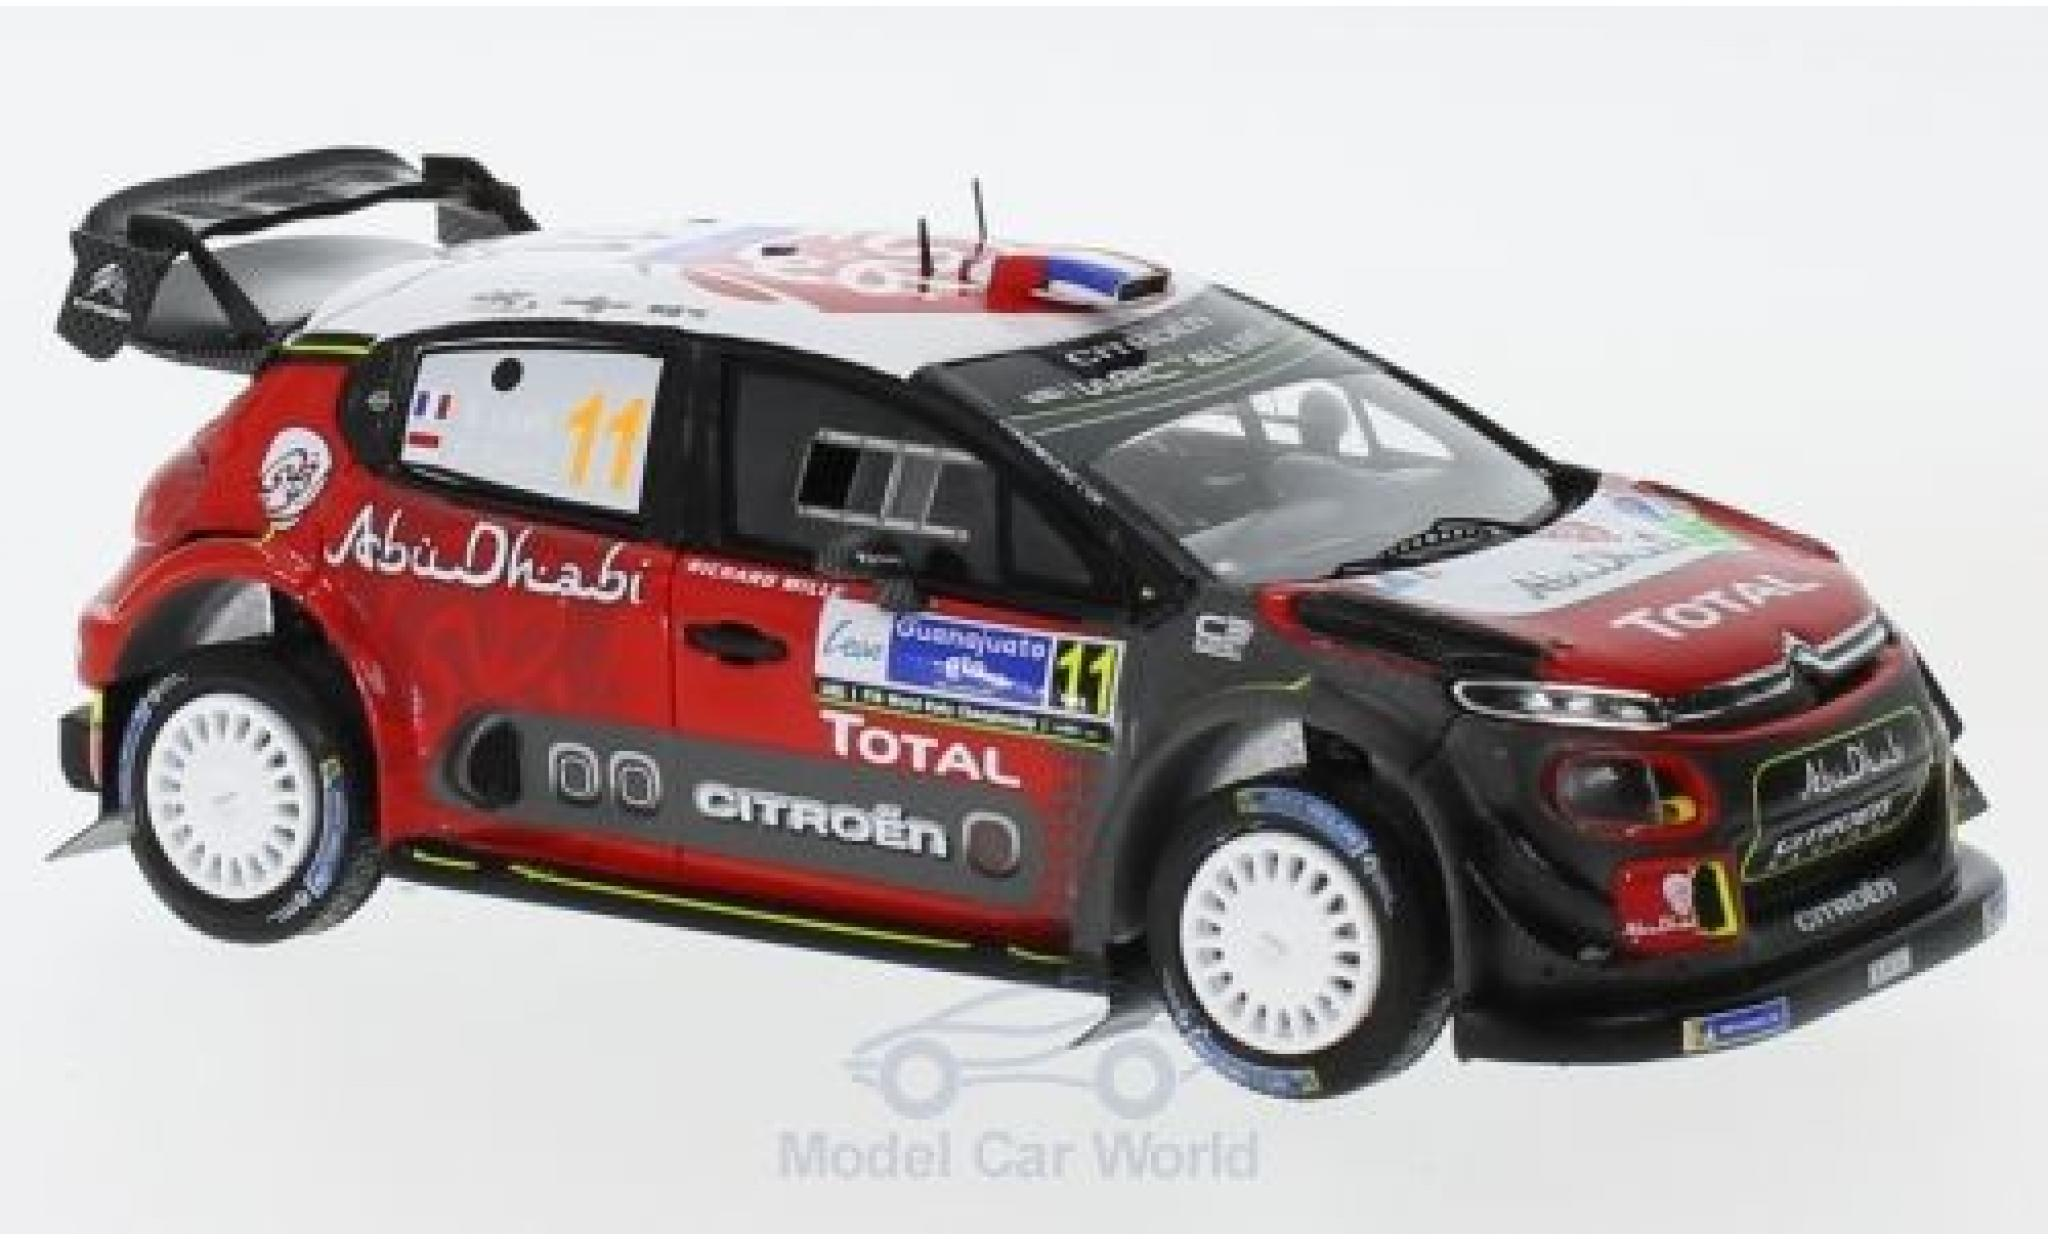 Citroen C3 1/43 Spark WRC No.11 Total Abu Dhabi World Rally Team Rallye WM Rallye Mexico 2018 S.Loeb/D.Elena